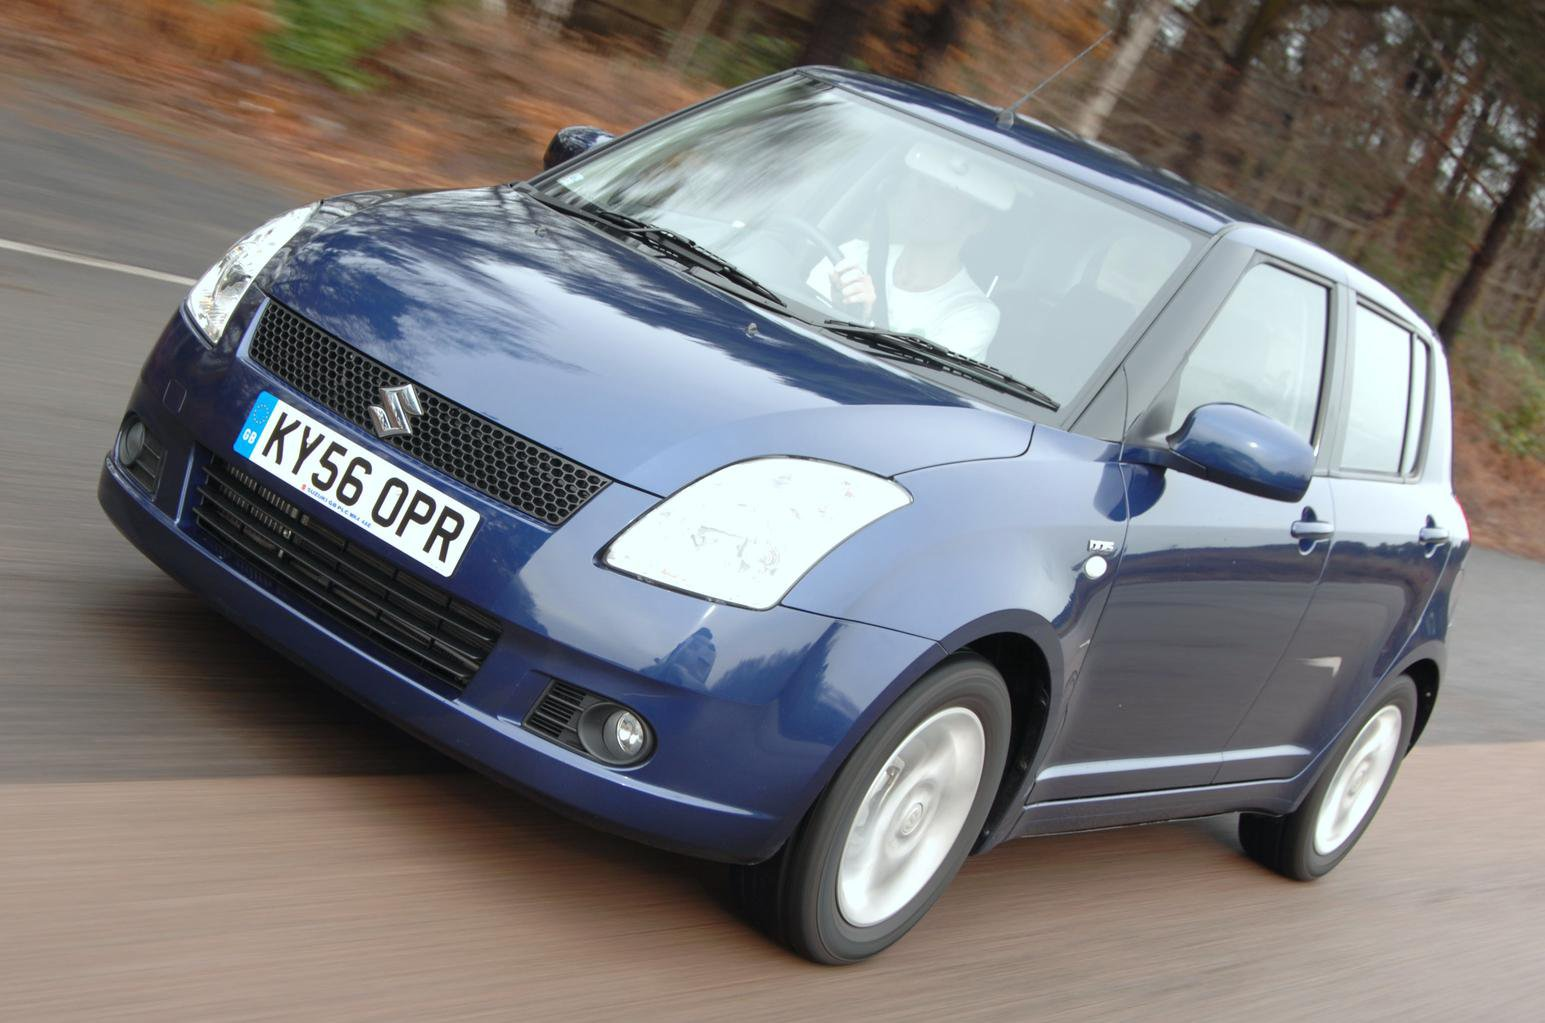 Top 10 used small cars for less than £2000 (and the ones to avoid)